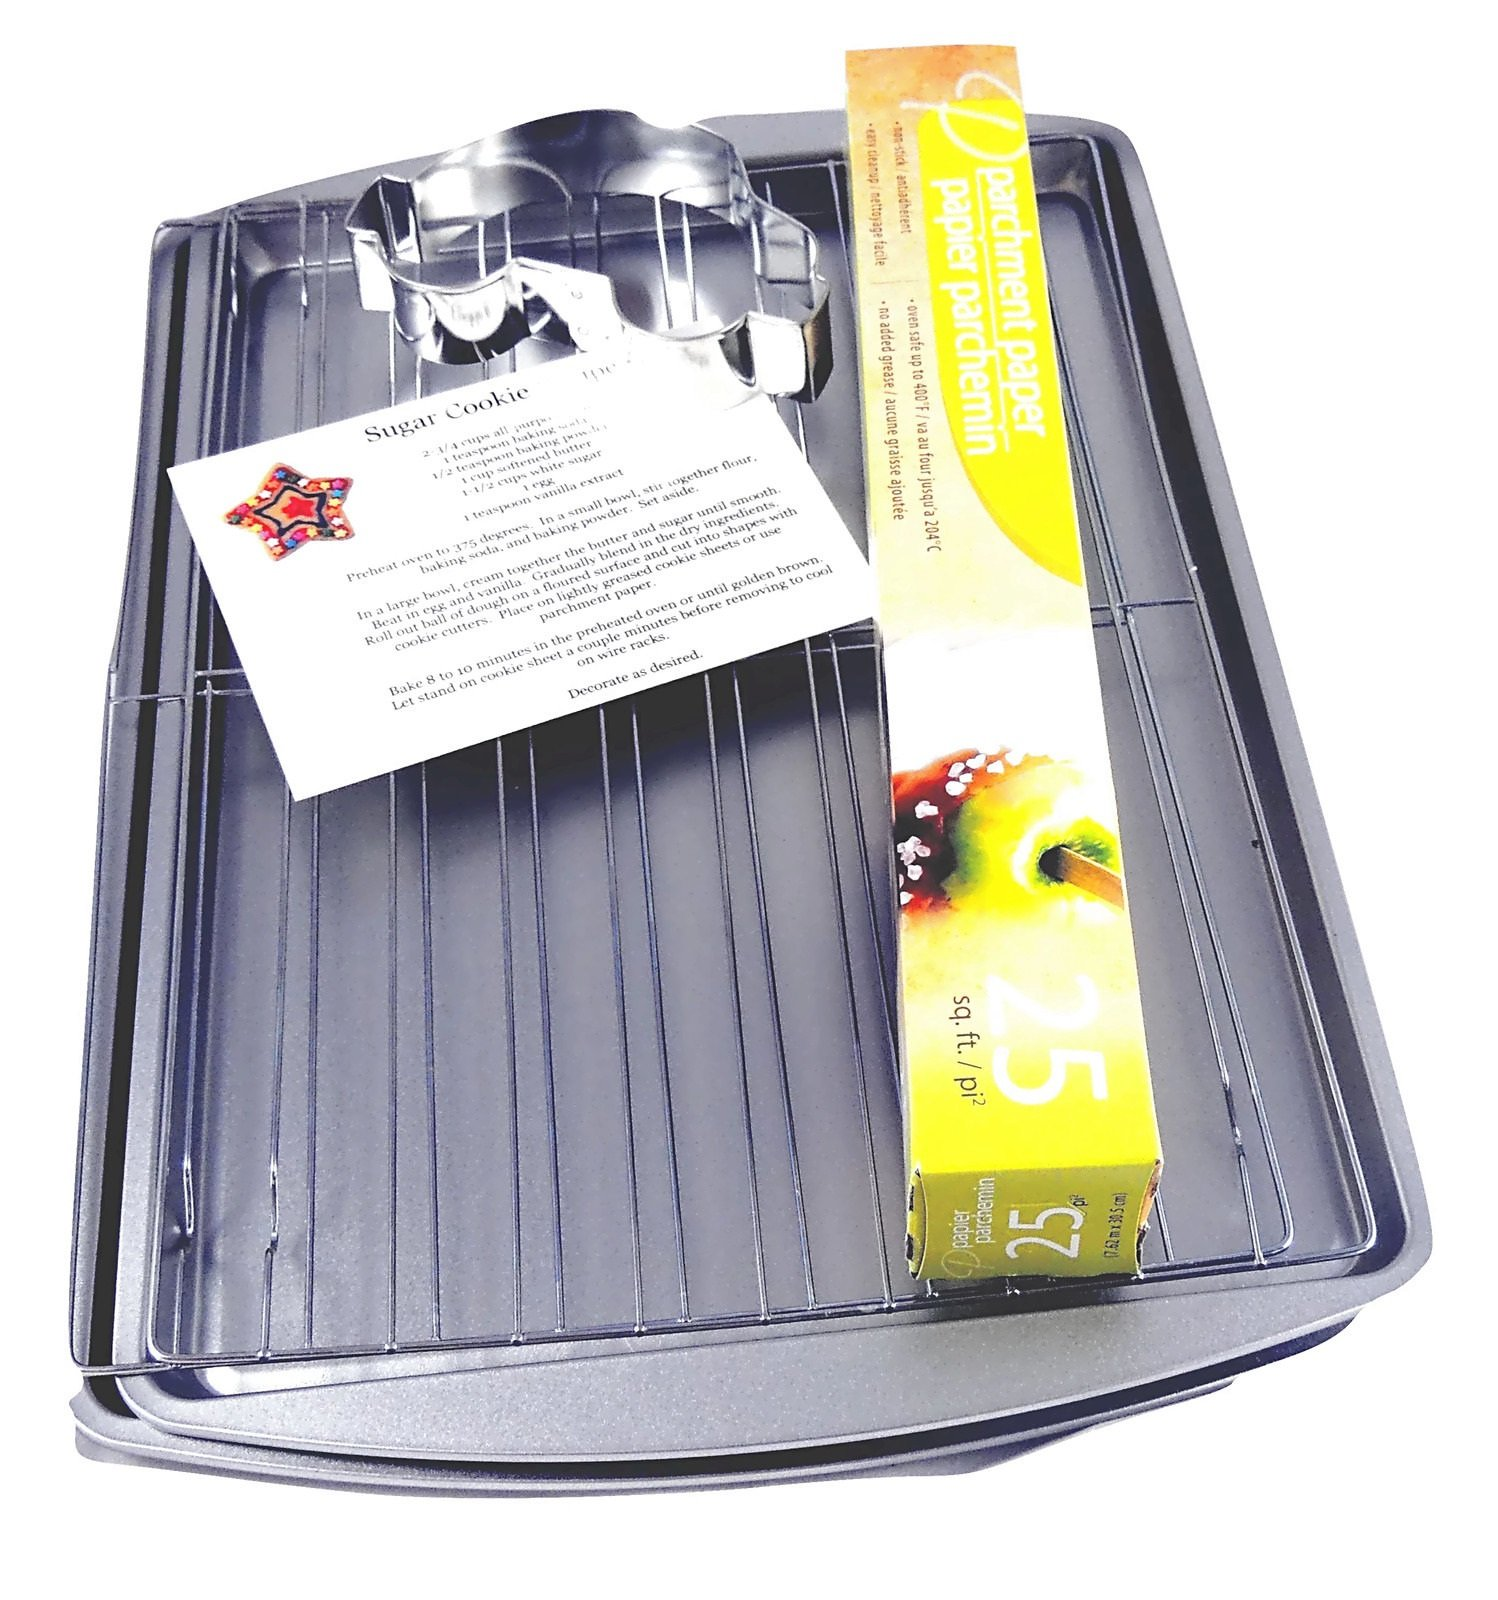 Cookie Sheets for Baking Bundle with Cooling Racks, Parchment Paper, Cookie Recipe Card, and Bonus Cookie Cutter (7 Items)